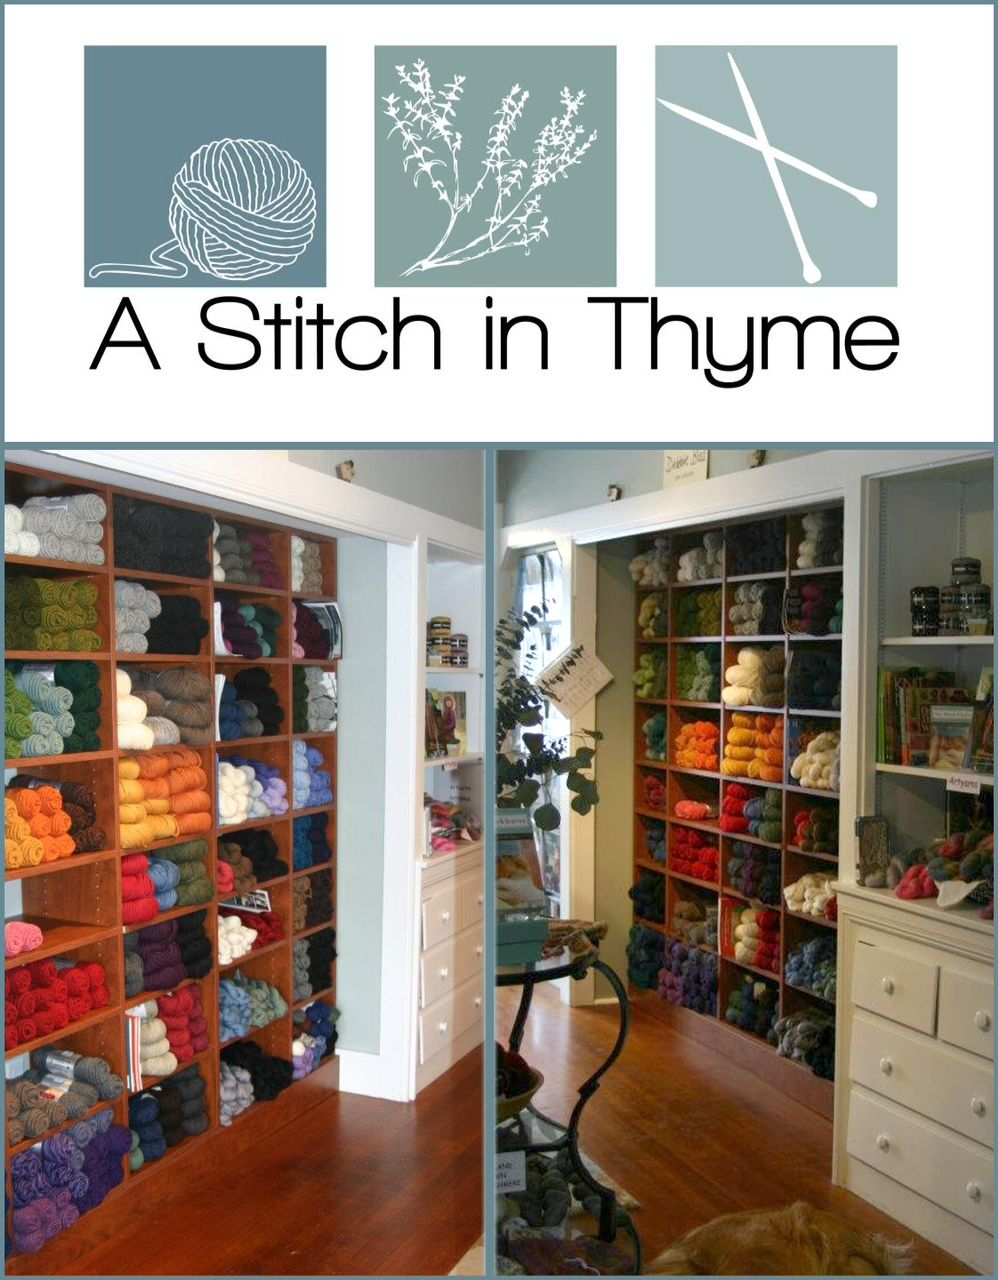 "Cape Cod Daily Deal with A Stitch in Thyme - a #yarn shop featuring fine yarns and unique gifts for the avid knitter and crocheter. We were established in May of 2011 and hope to make all feel welcome and at home in our cozy shop. A stitch in Thyme holds ""Sit  Stitch"" every Tuesday afternoon from 2pm to 4pm, Friday morning from 10:00am to 12:00pm and every Saturday morning from 10am to 12pm. This is an open #knitting session and no registration is required. http://www.capecoddailydeal.com/"